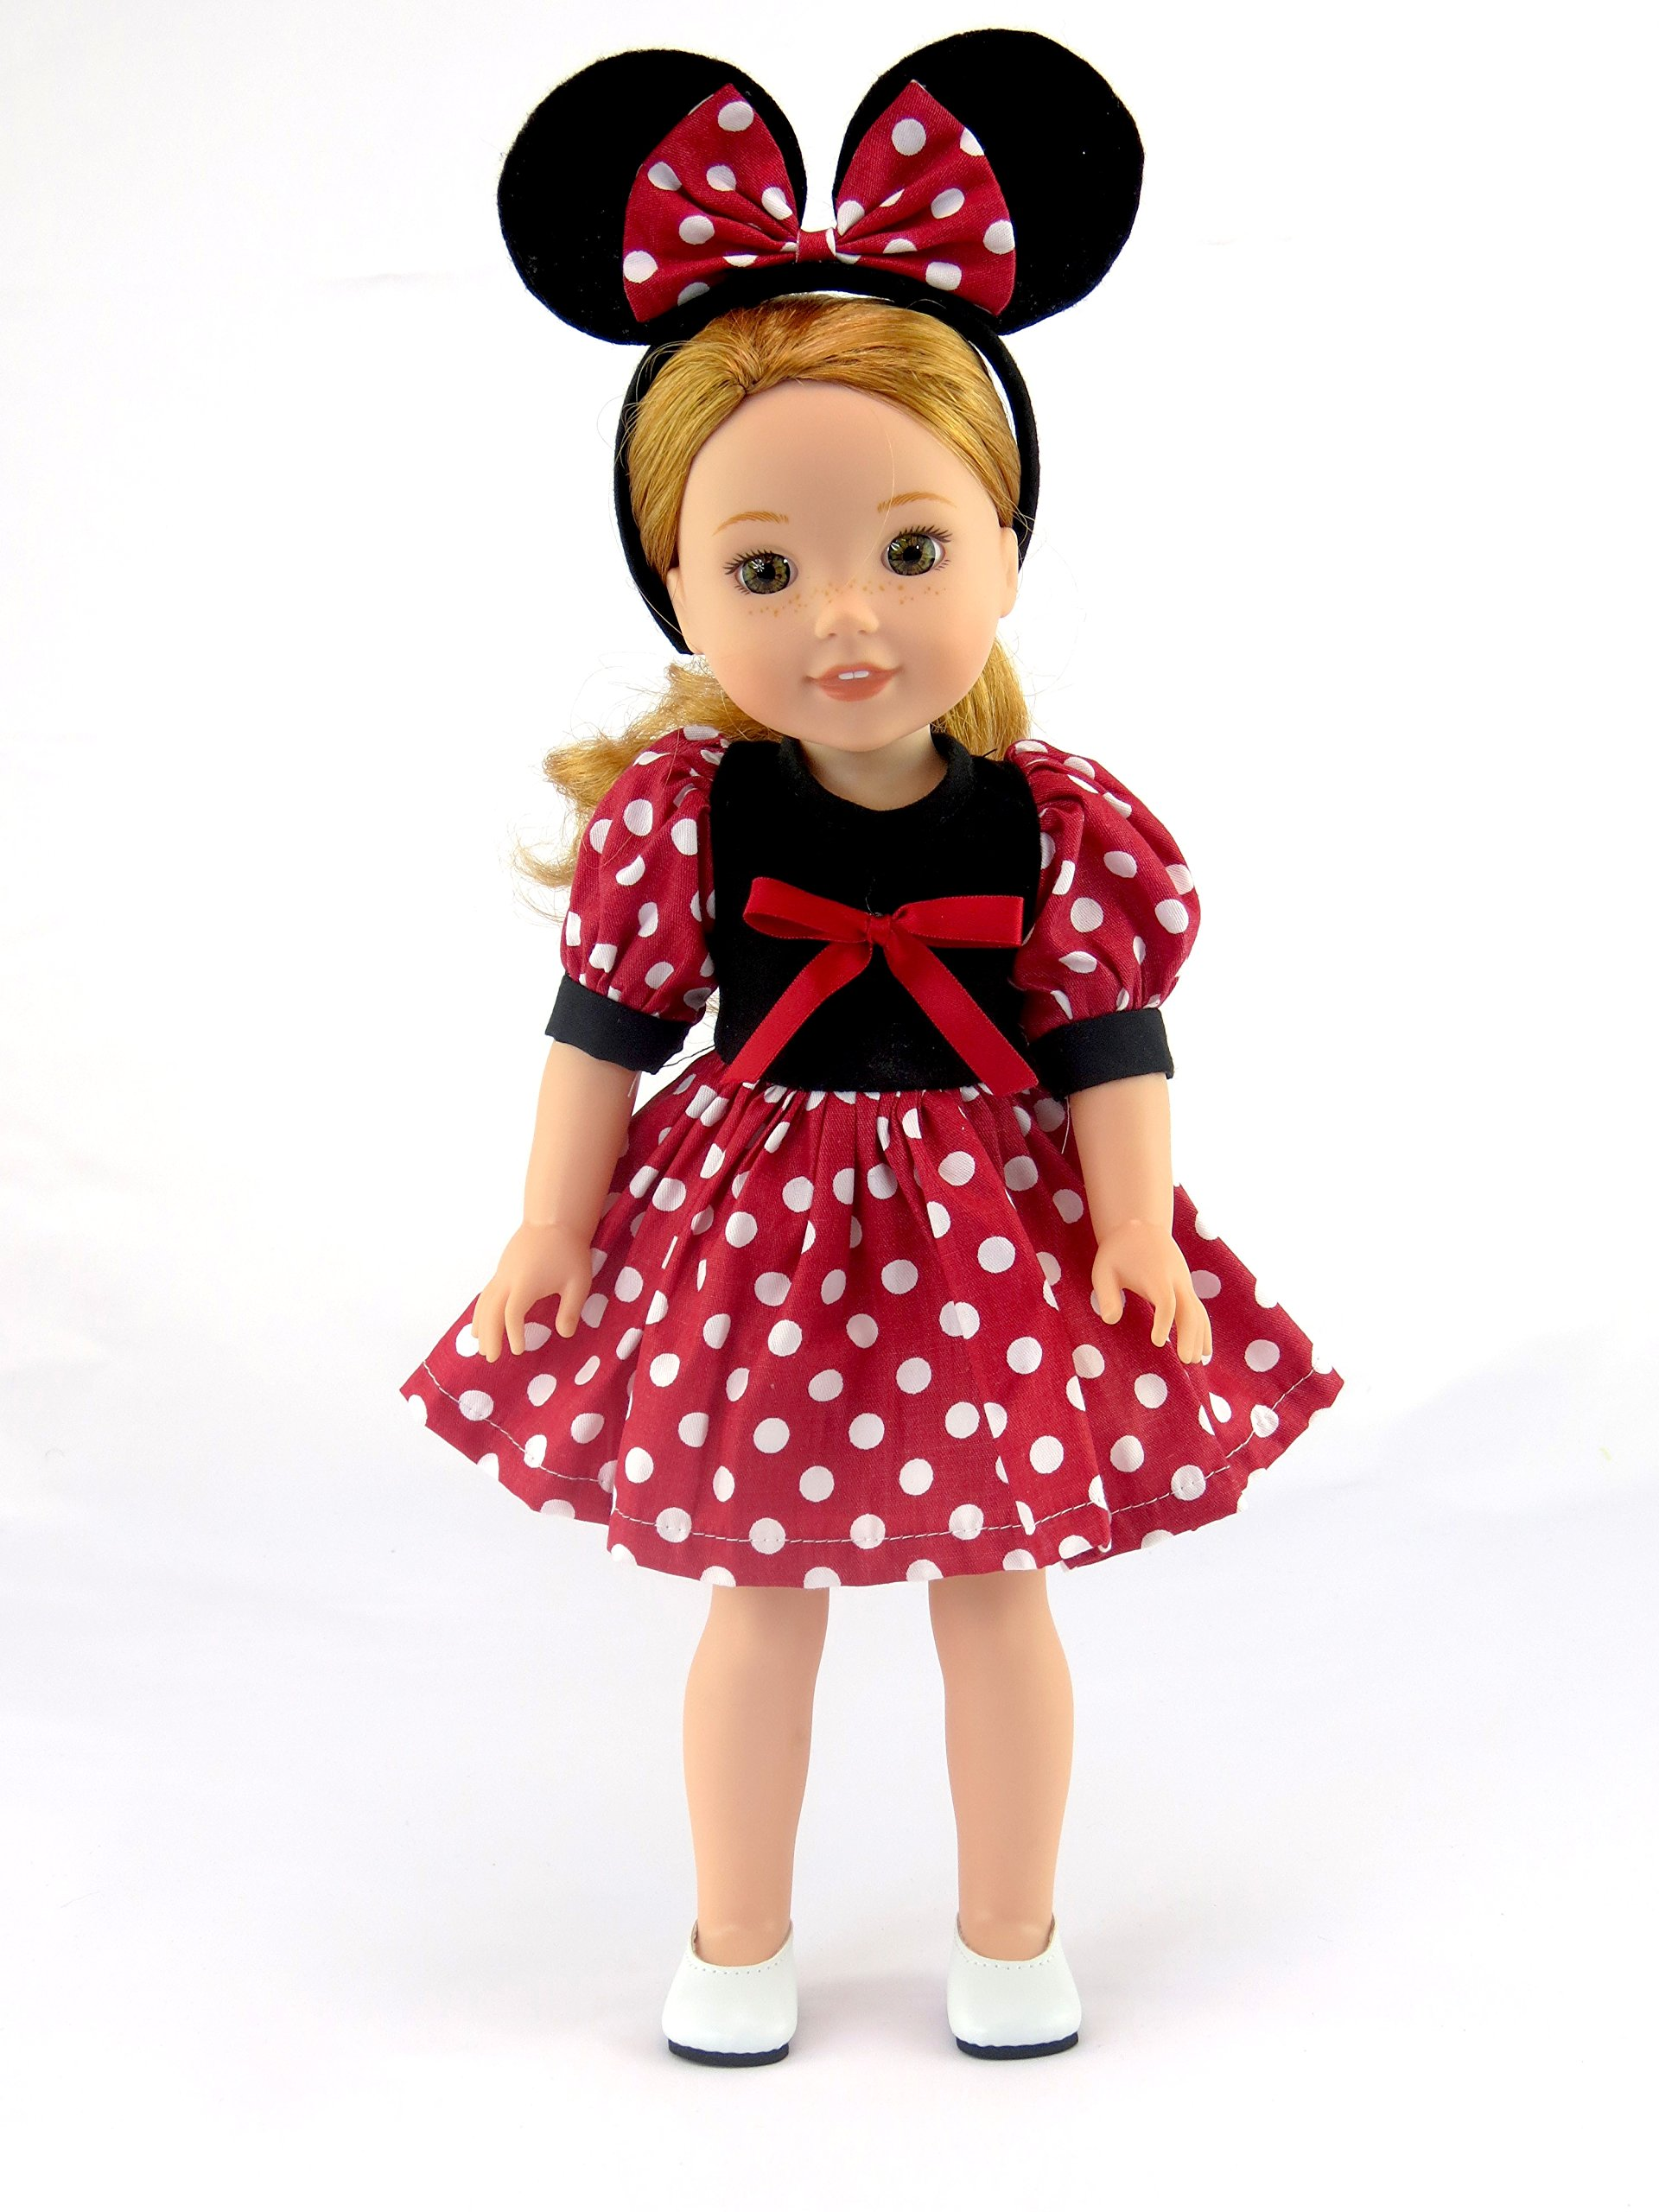 American Fashion World Little Mouse Dress -Fits 14 Inch Wellie Wisher Dolls | 14 Inch Doll Clothing by American Fashion World